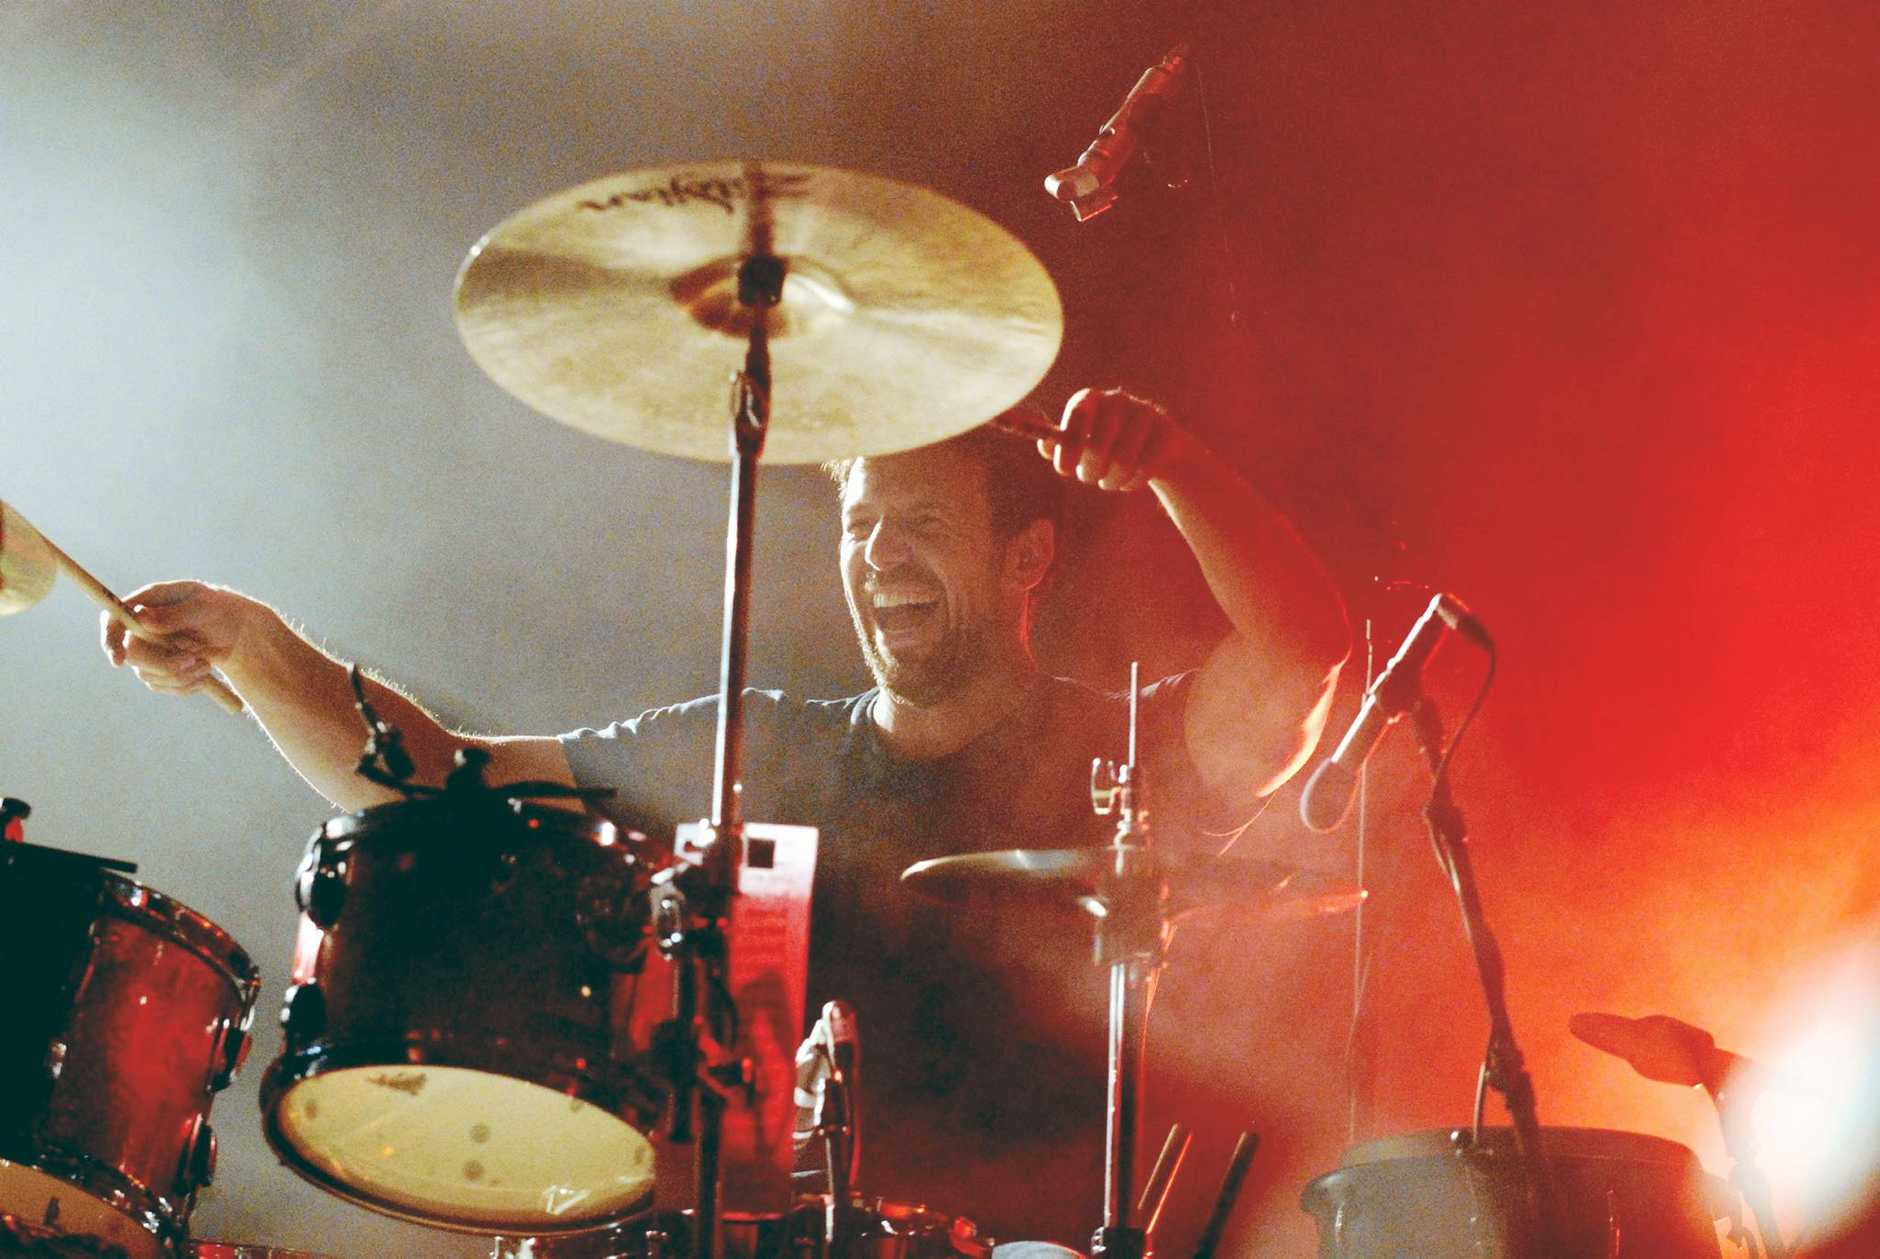 Jon Coghill performs with Powderfinger during the Sunsets farewell tour in Toowoomba in October 2010.